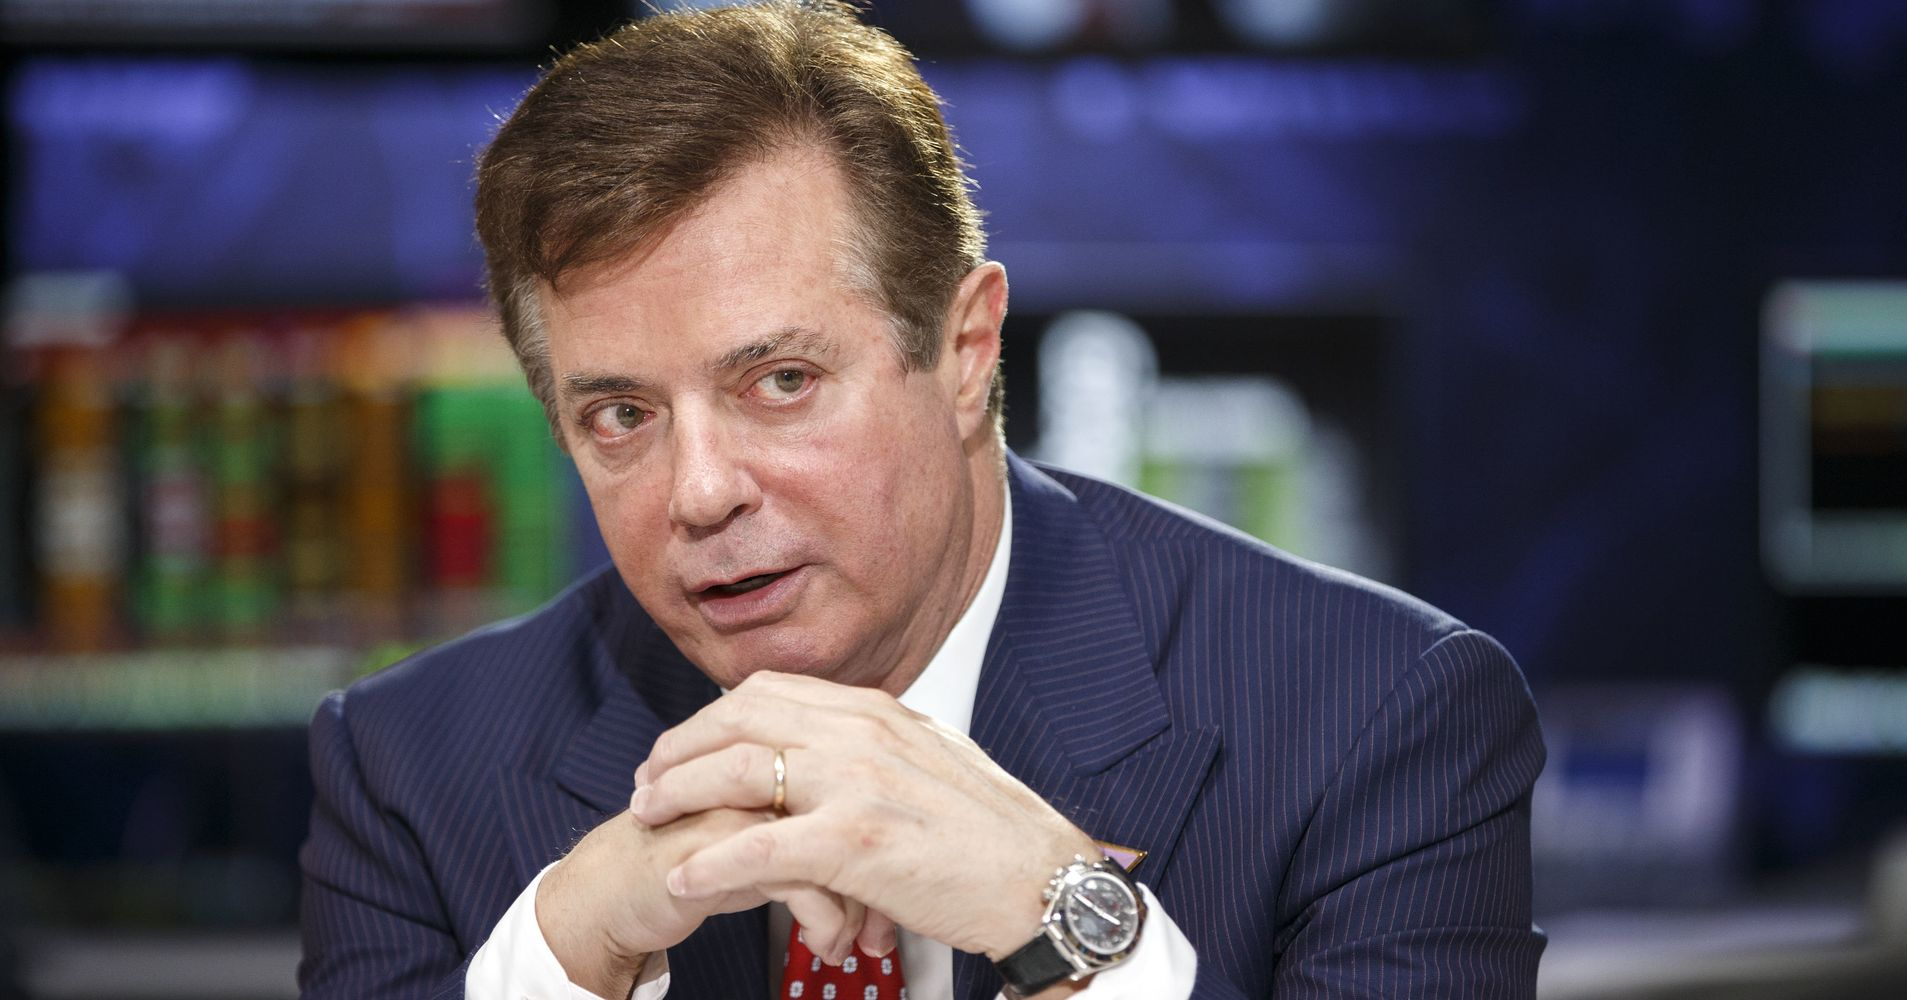 Paul Manafort Retroactively Registers As A Foreign Agent For Ukraine Lobbying